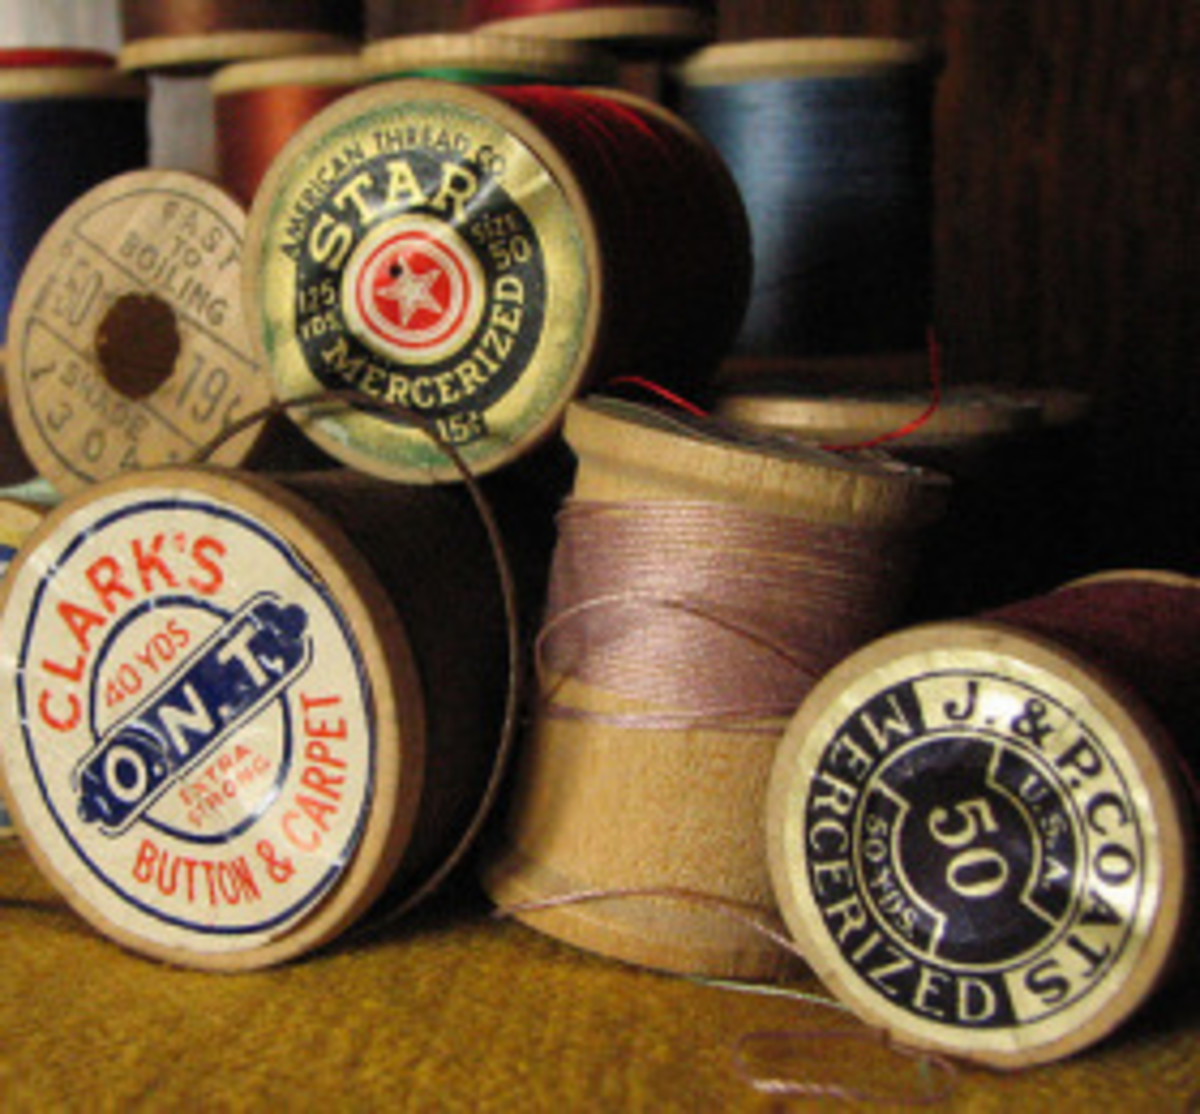 Wooden Spool of Thread